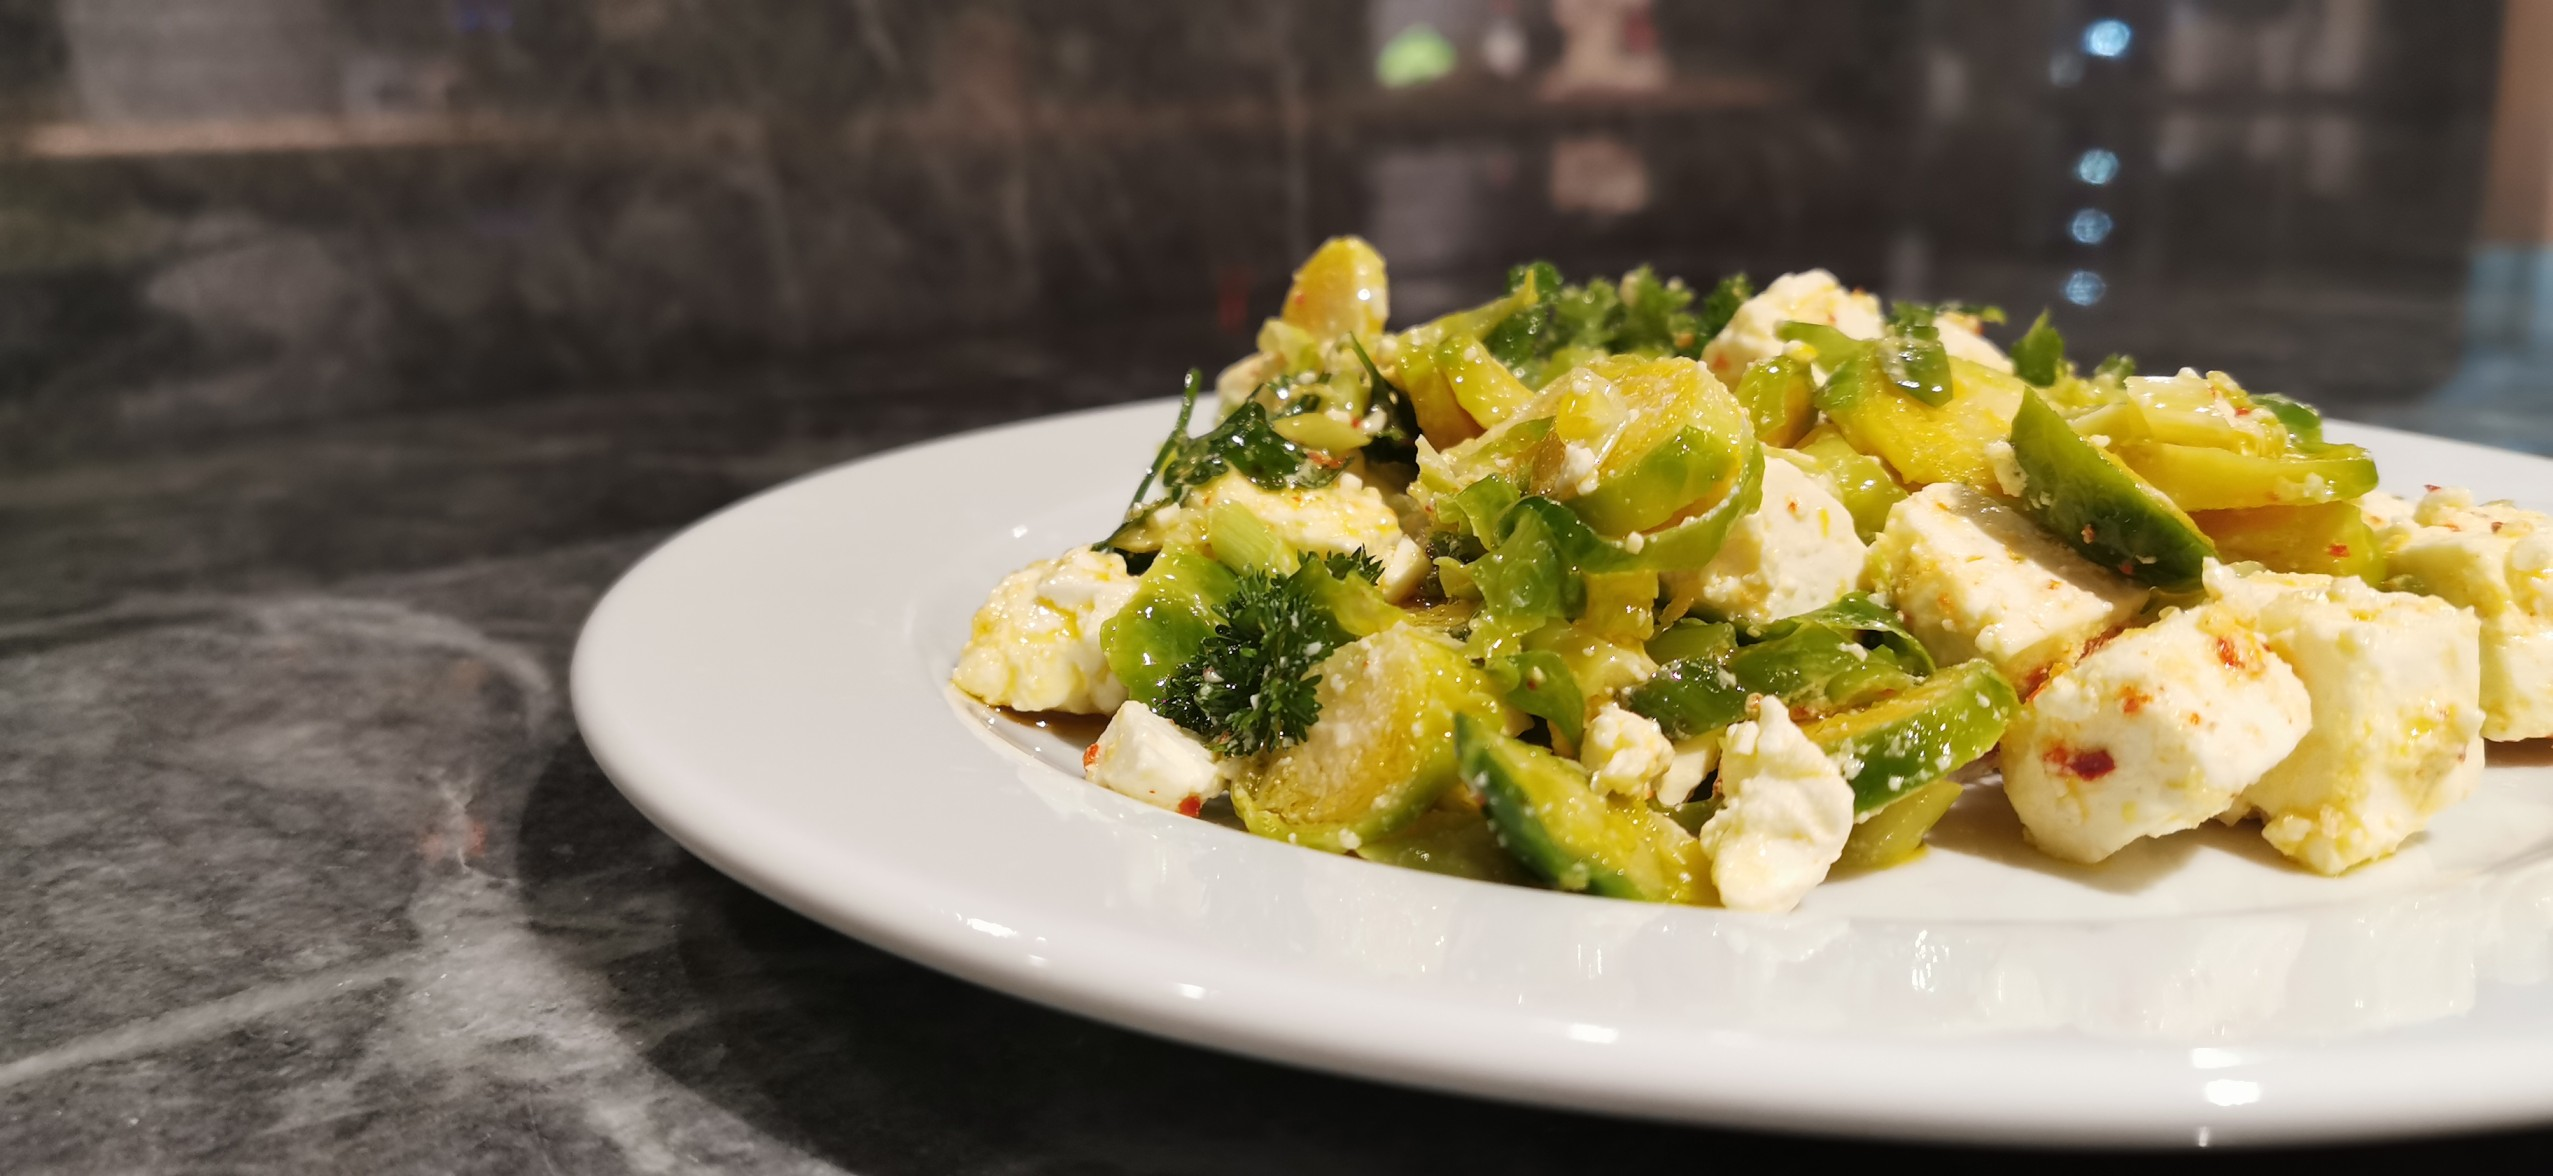 Brussel Sprouts And Feta Salad